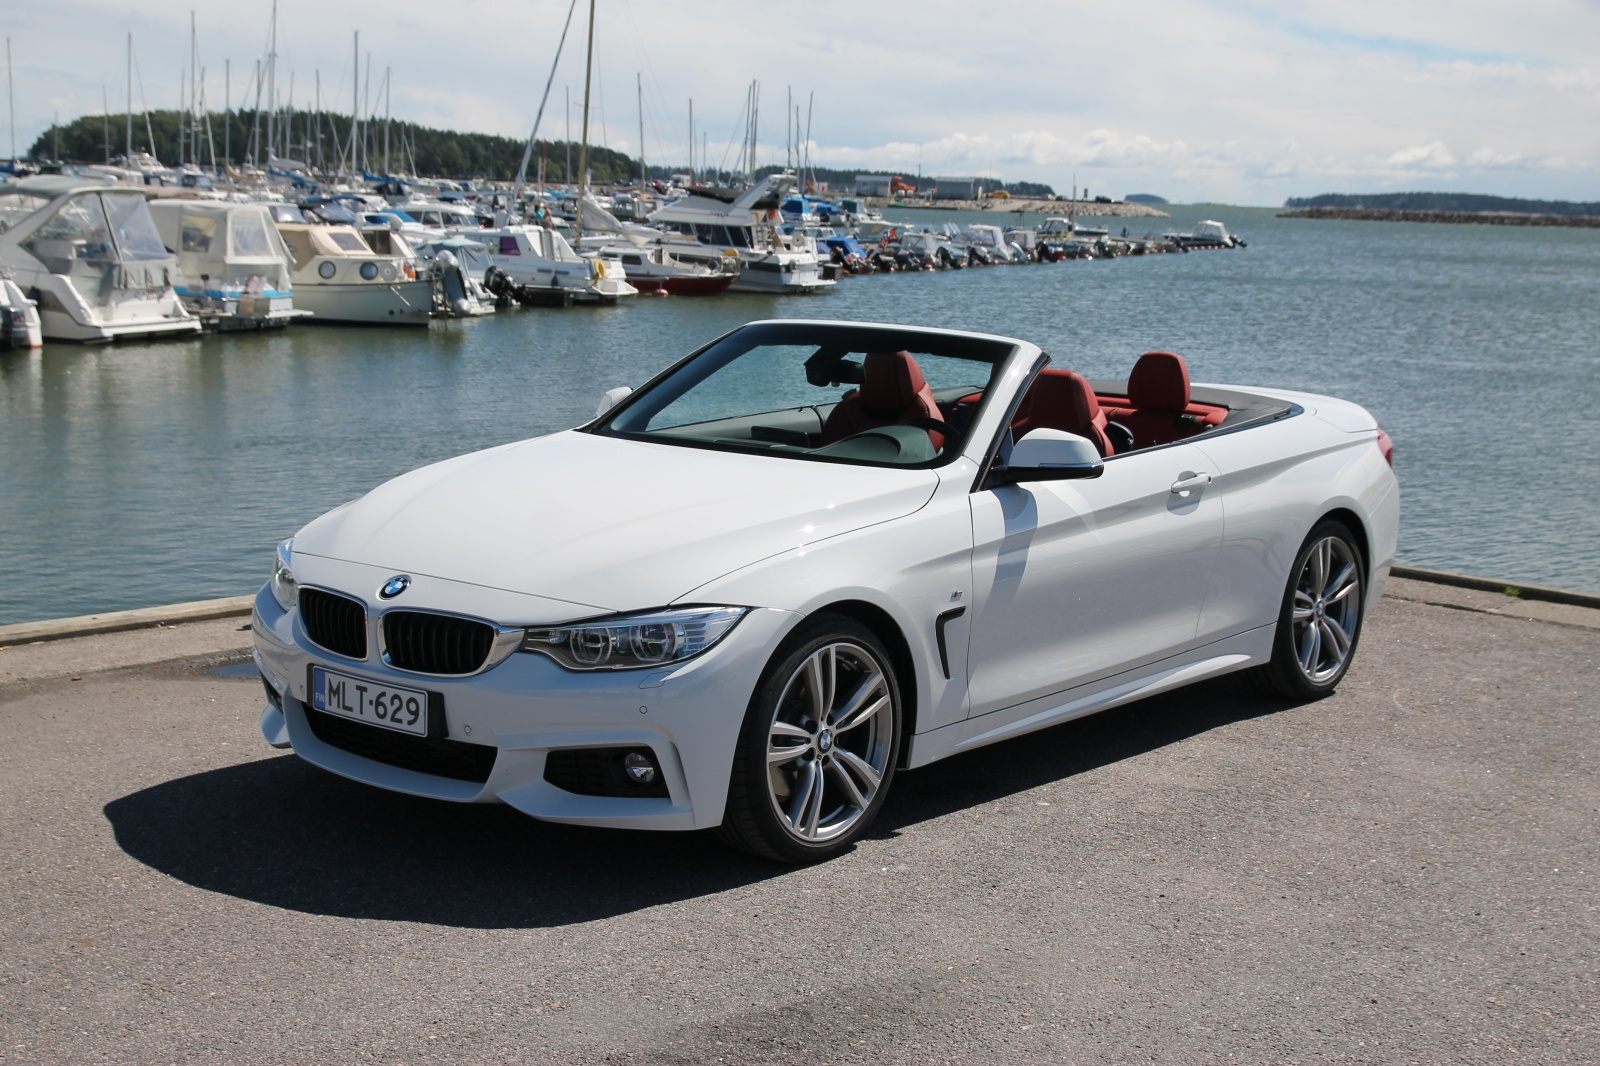 2015 BMW 428i Convertible - Luxury Things